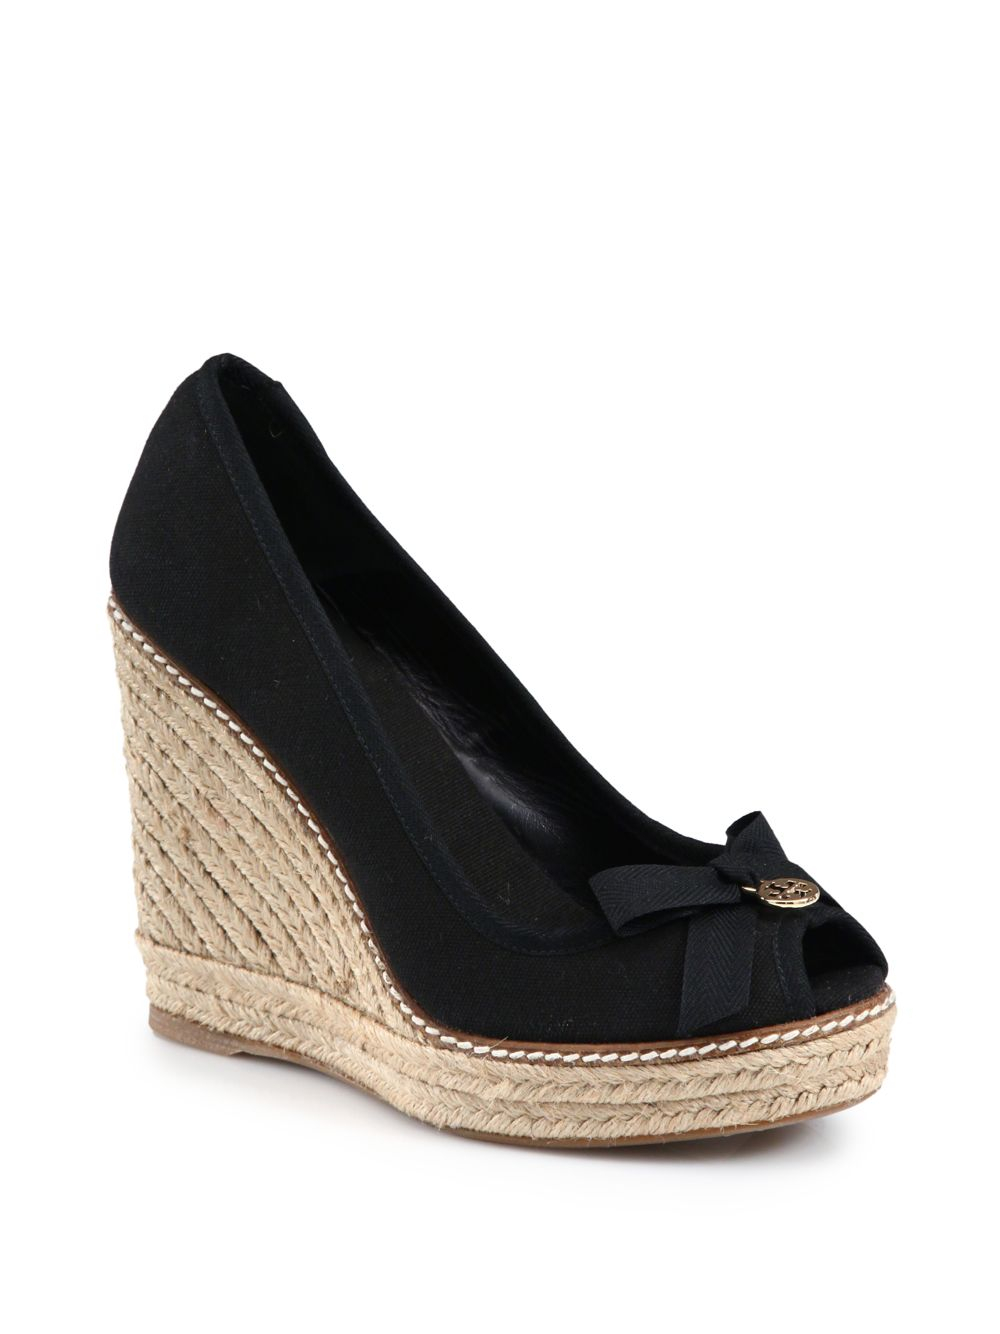 52666e31a657 Lyst - Tory Burch Jackie Canvas Espadrille Wedges in Black